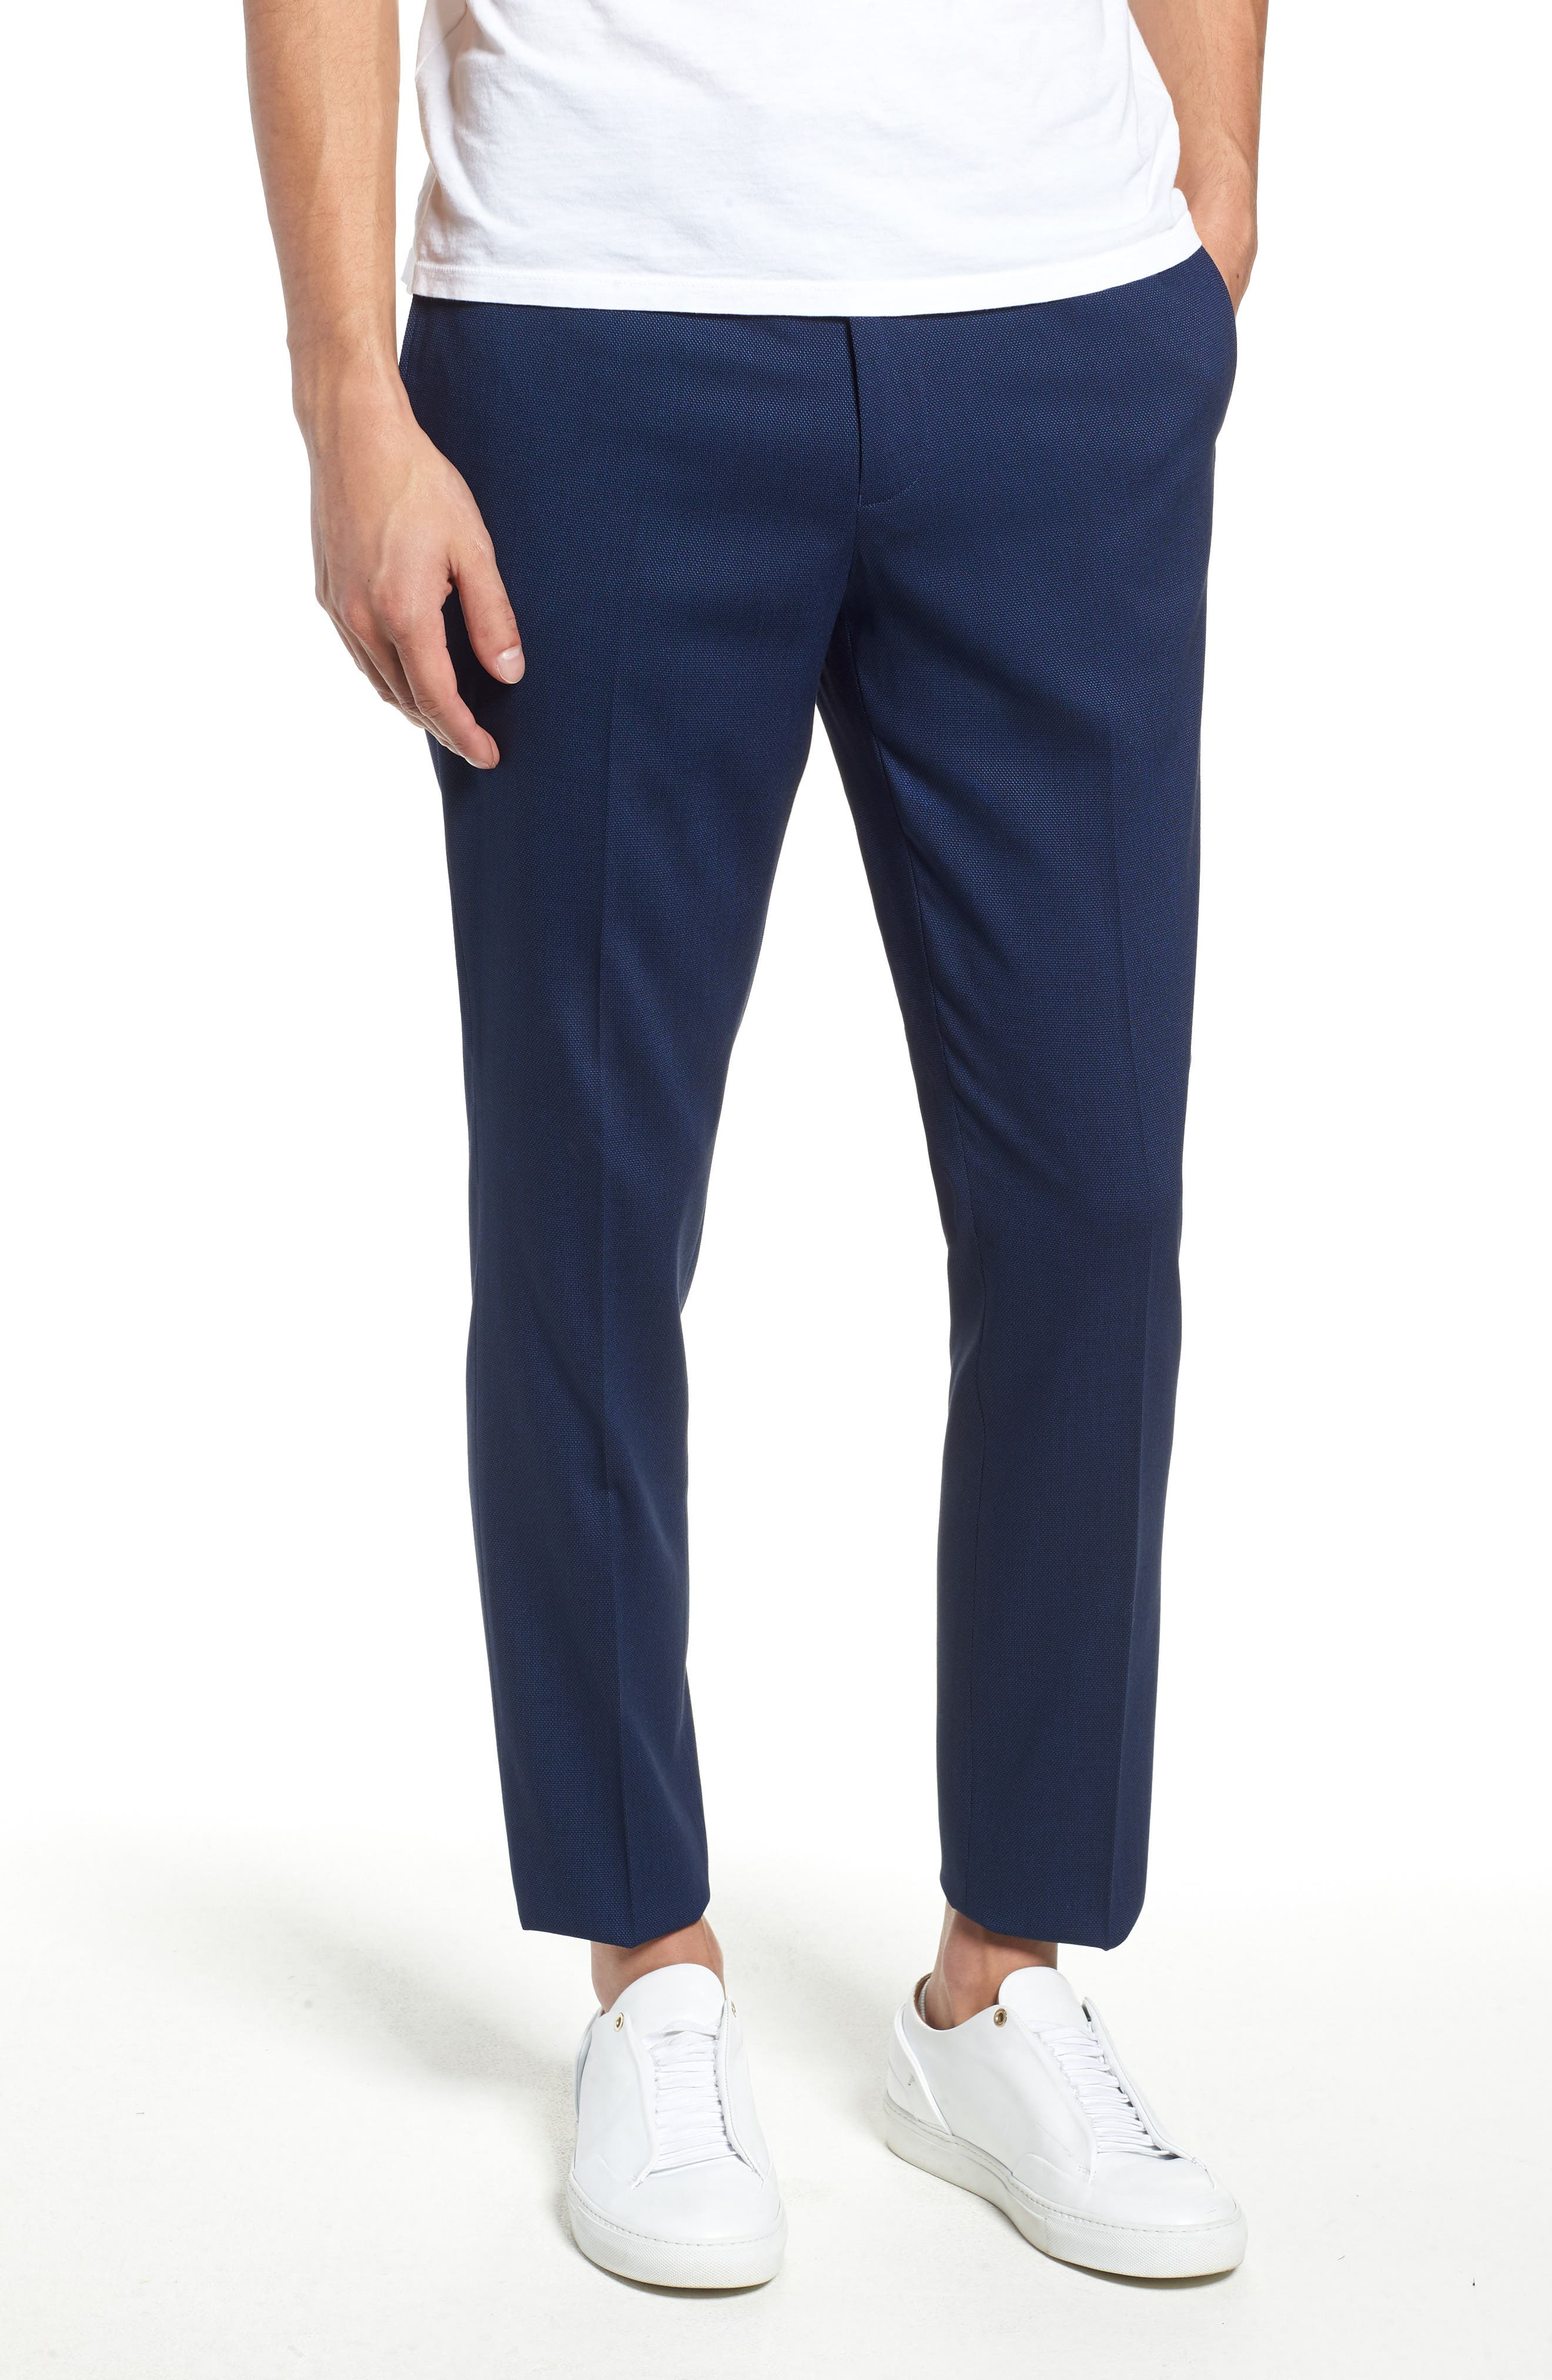 TOPMAN, Skinny Fit Suit Pants, Main thumbnail 1, color, MID BLUE